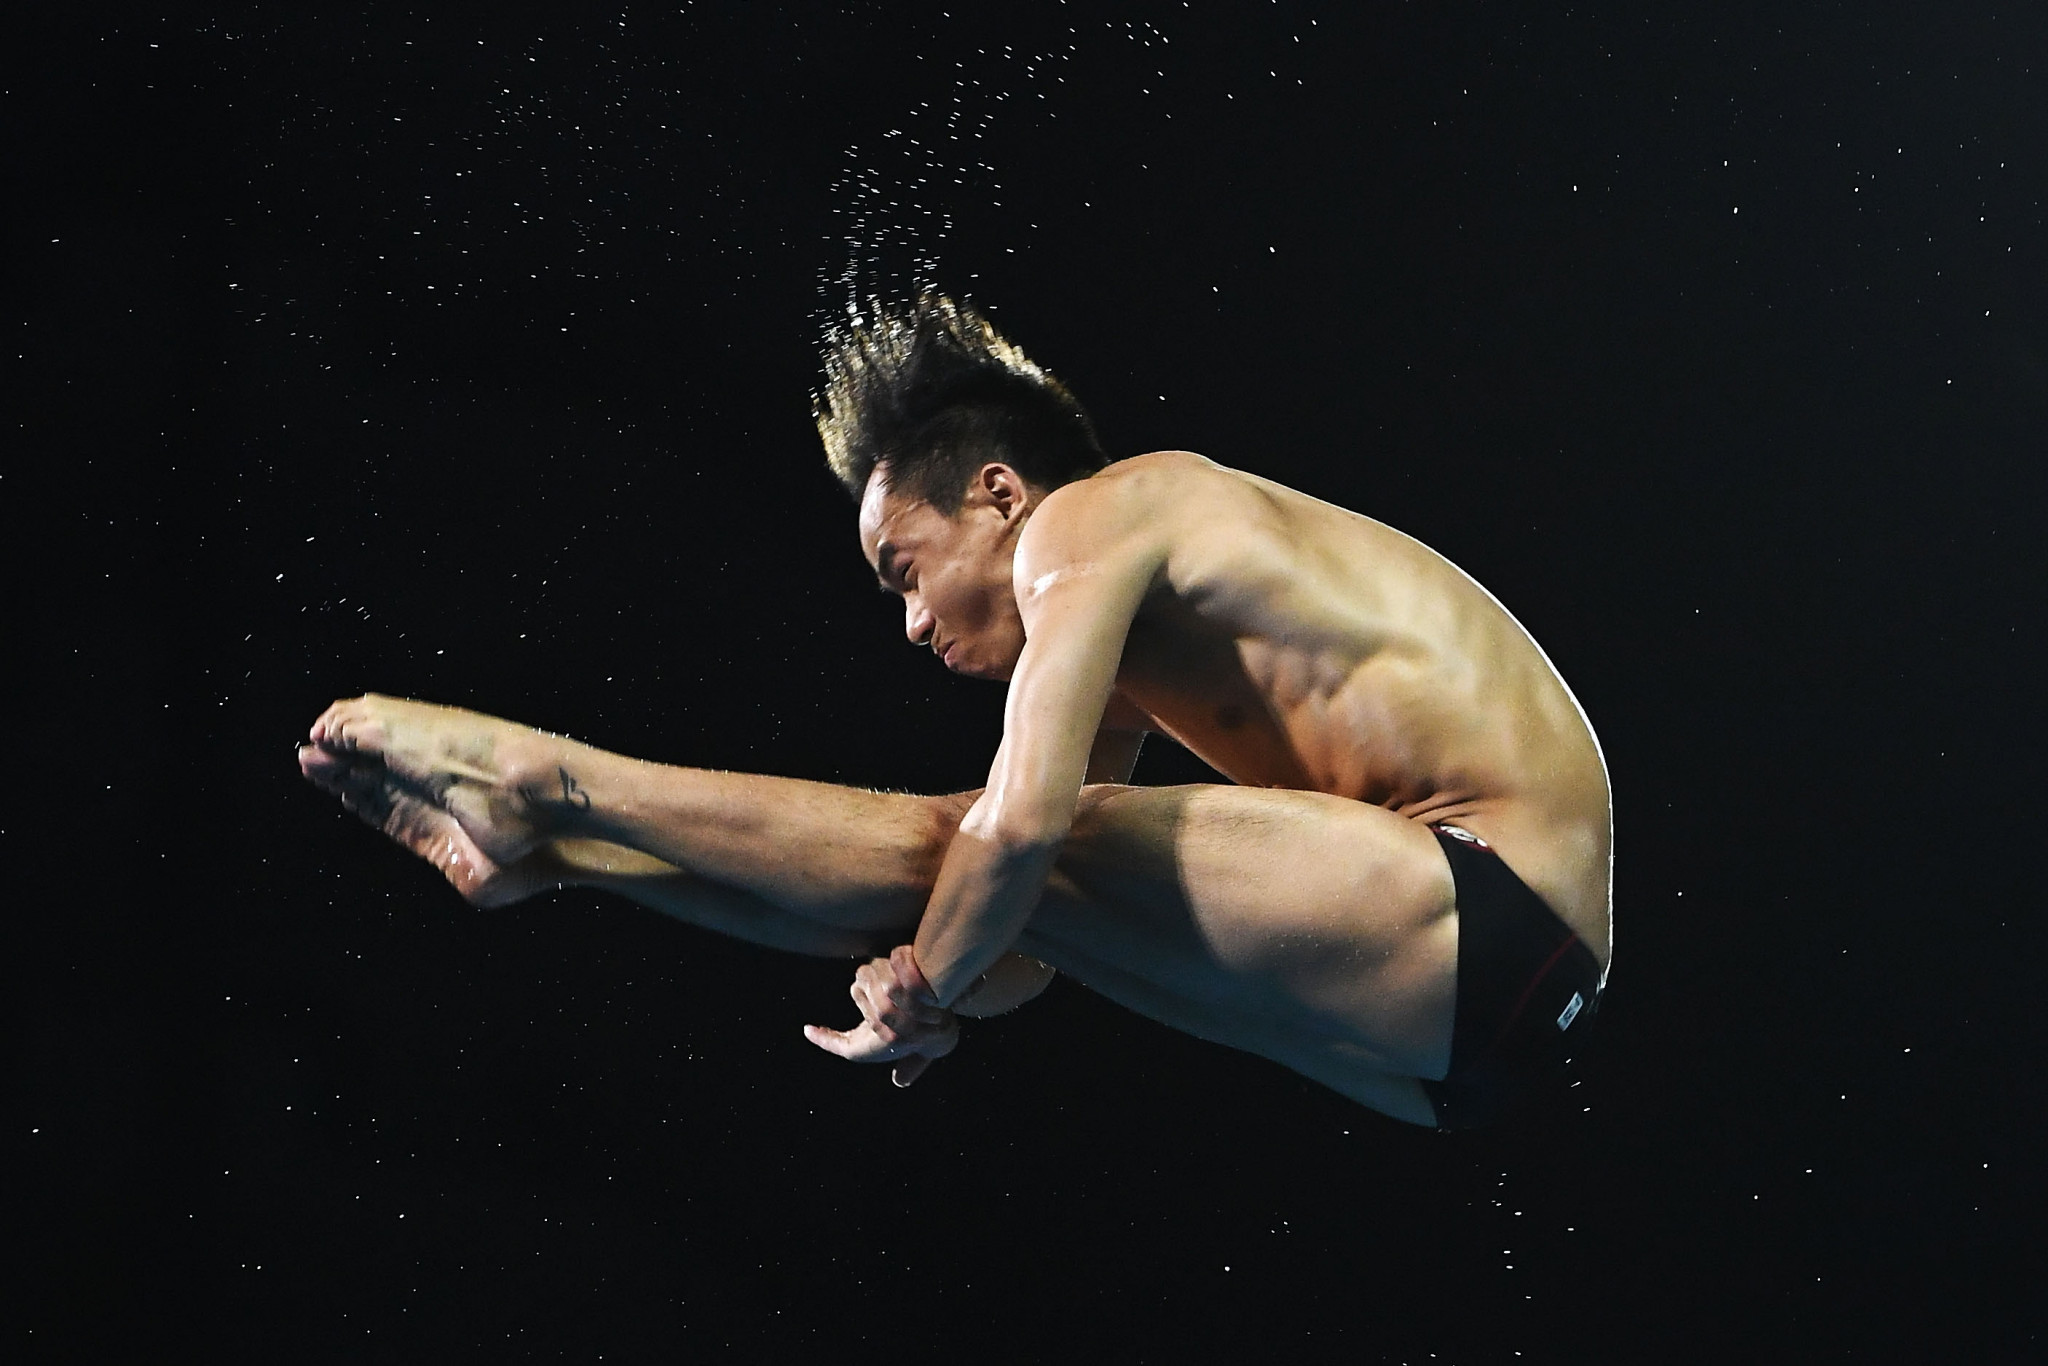 Gold Coast 2018 venue ready to host penultimate FINA Diving Grand Prix